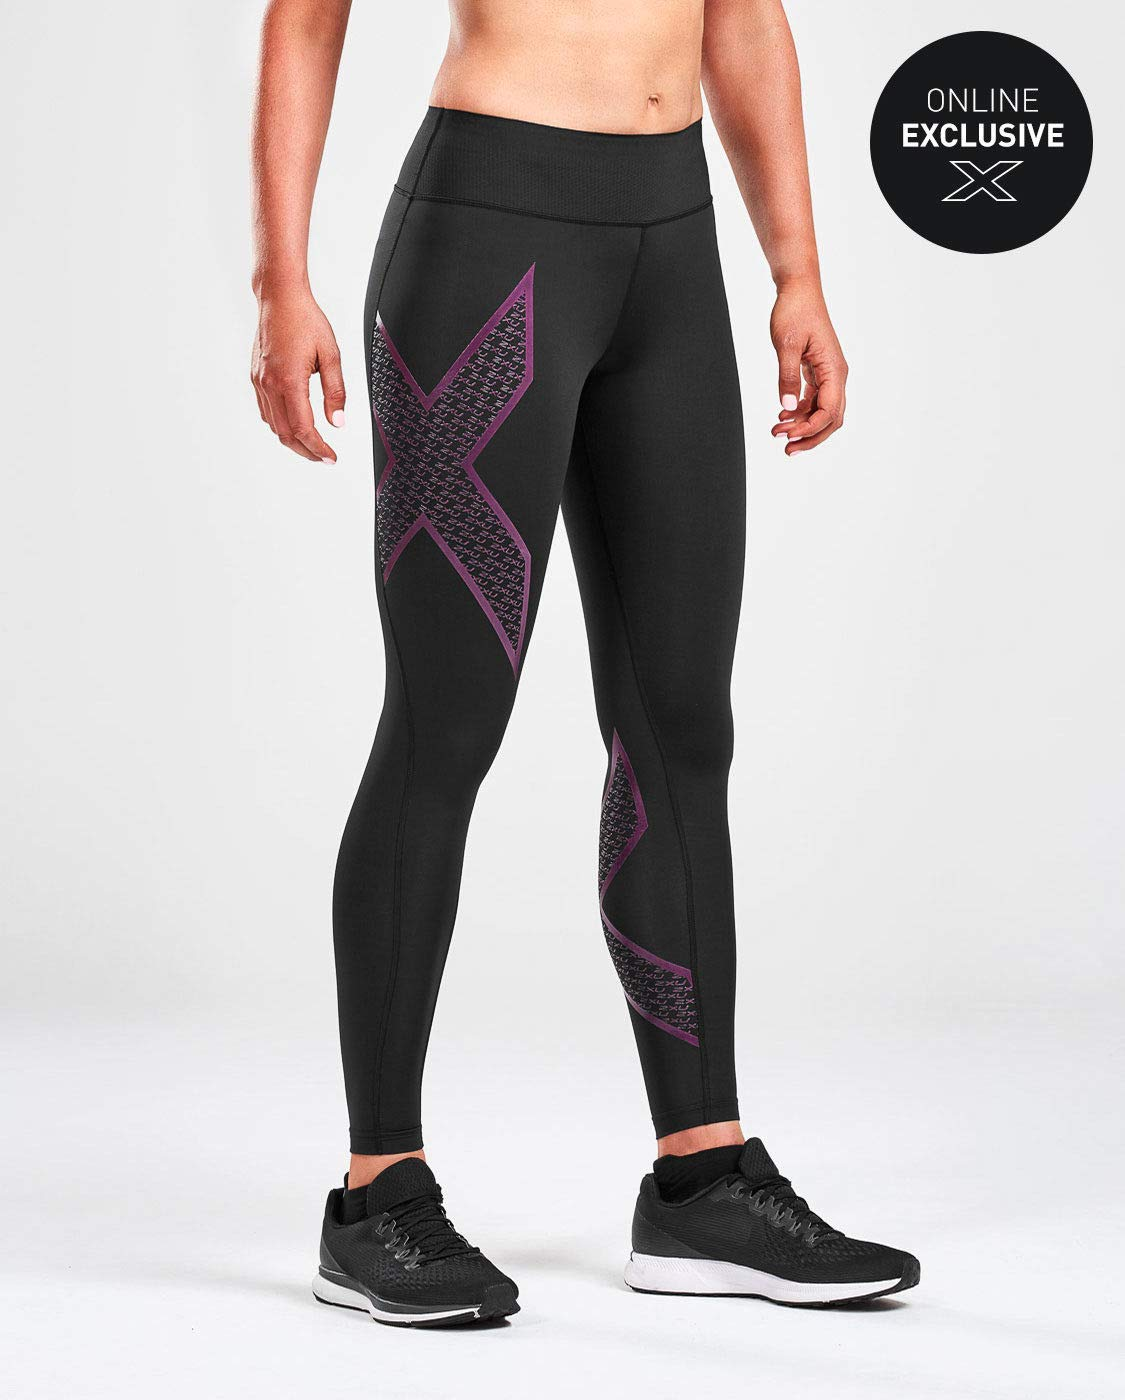 2XU Women's Bonded Mid-Rise Tights Black / 2XU Fill Grape Juice S by 2XU (Image #1)